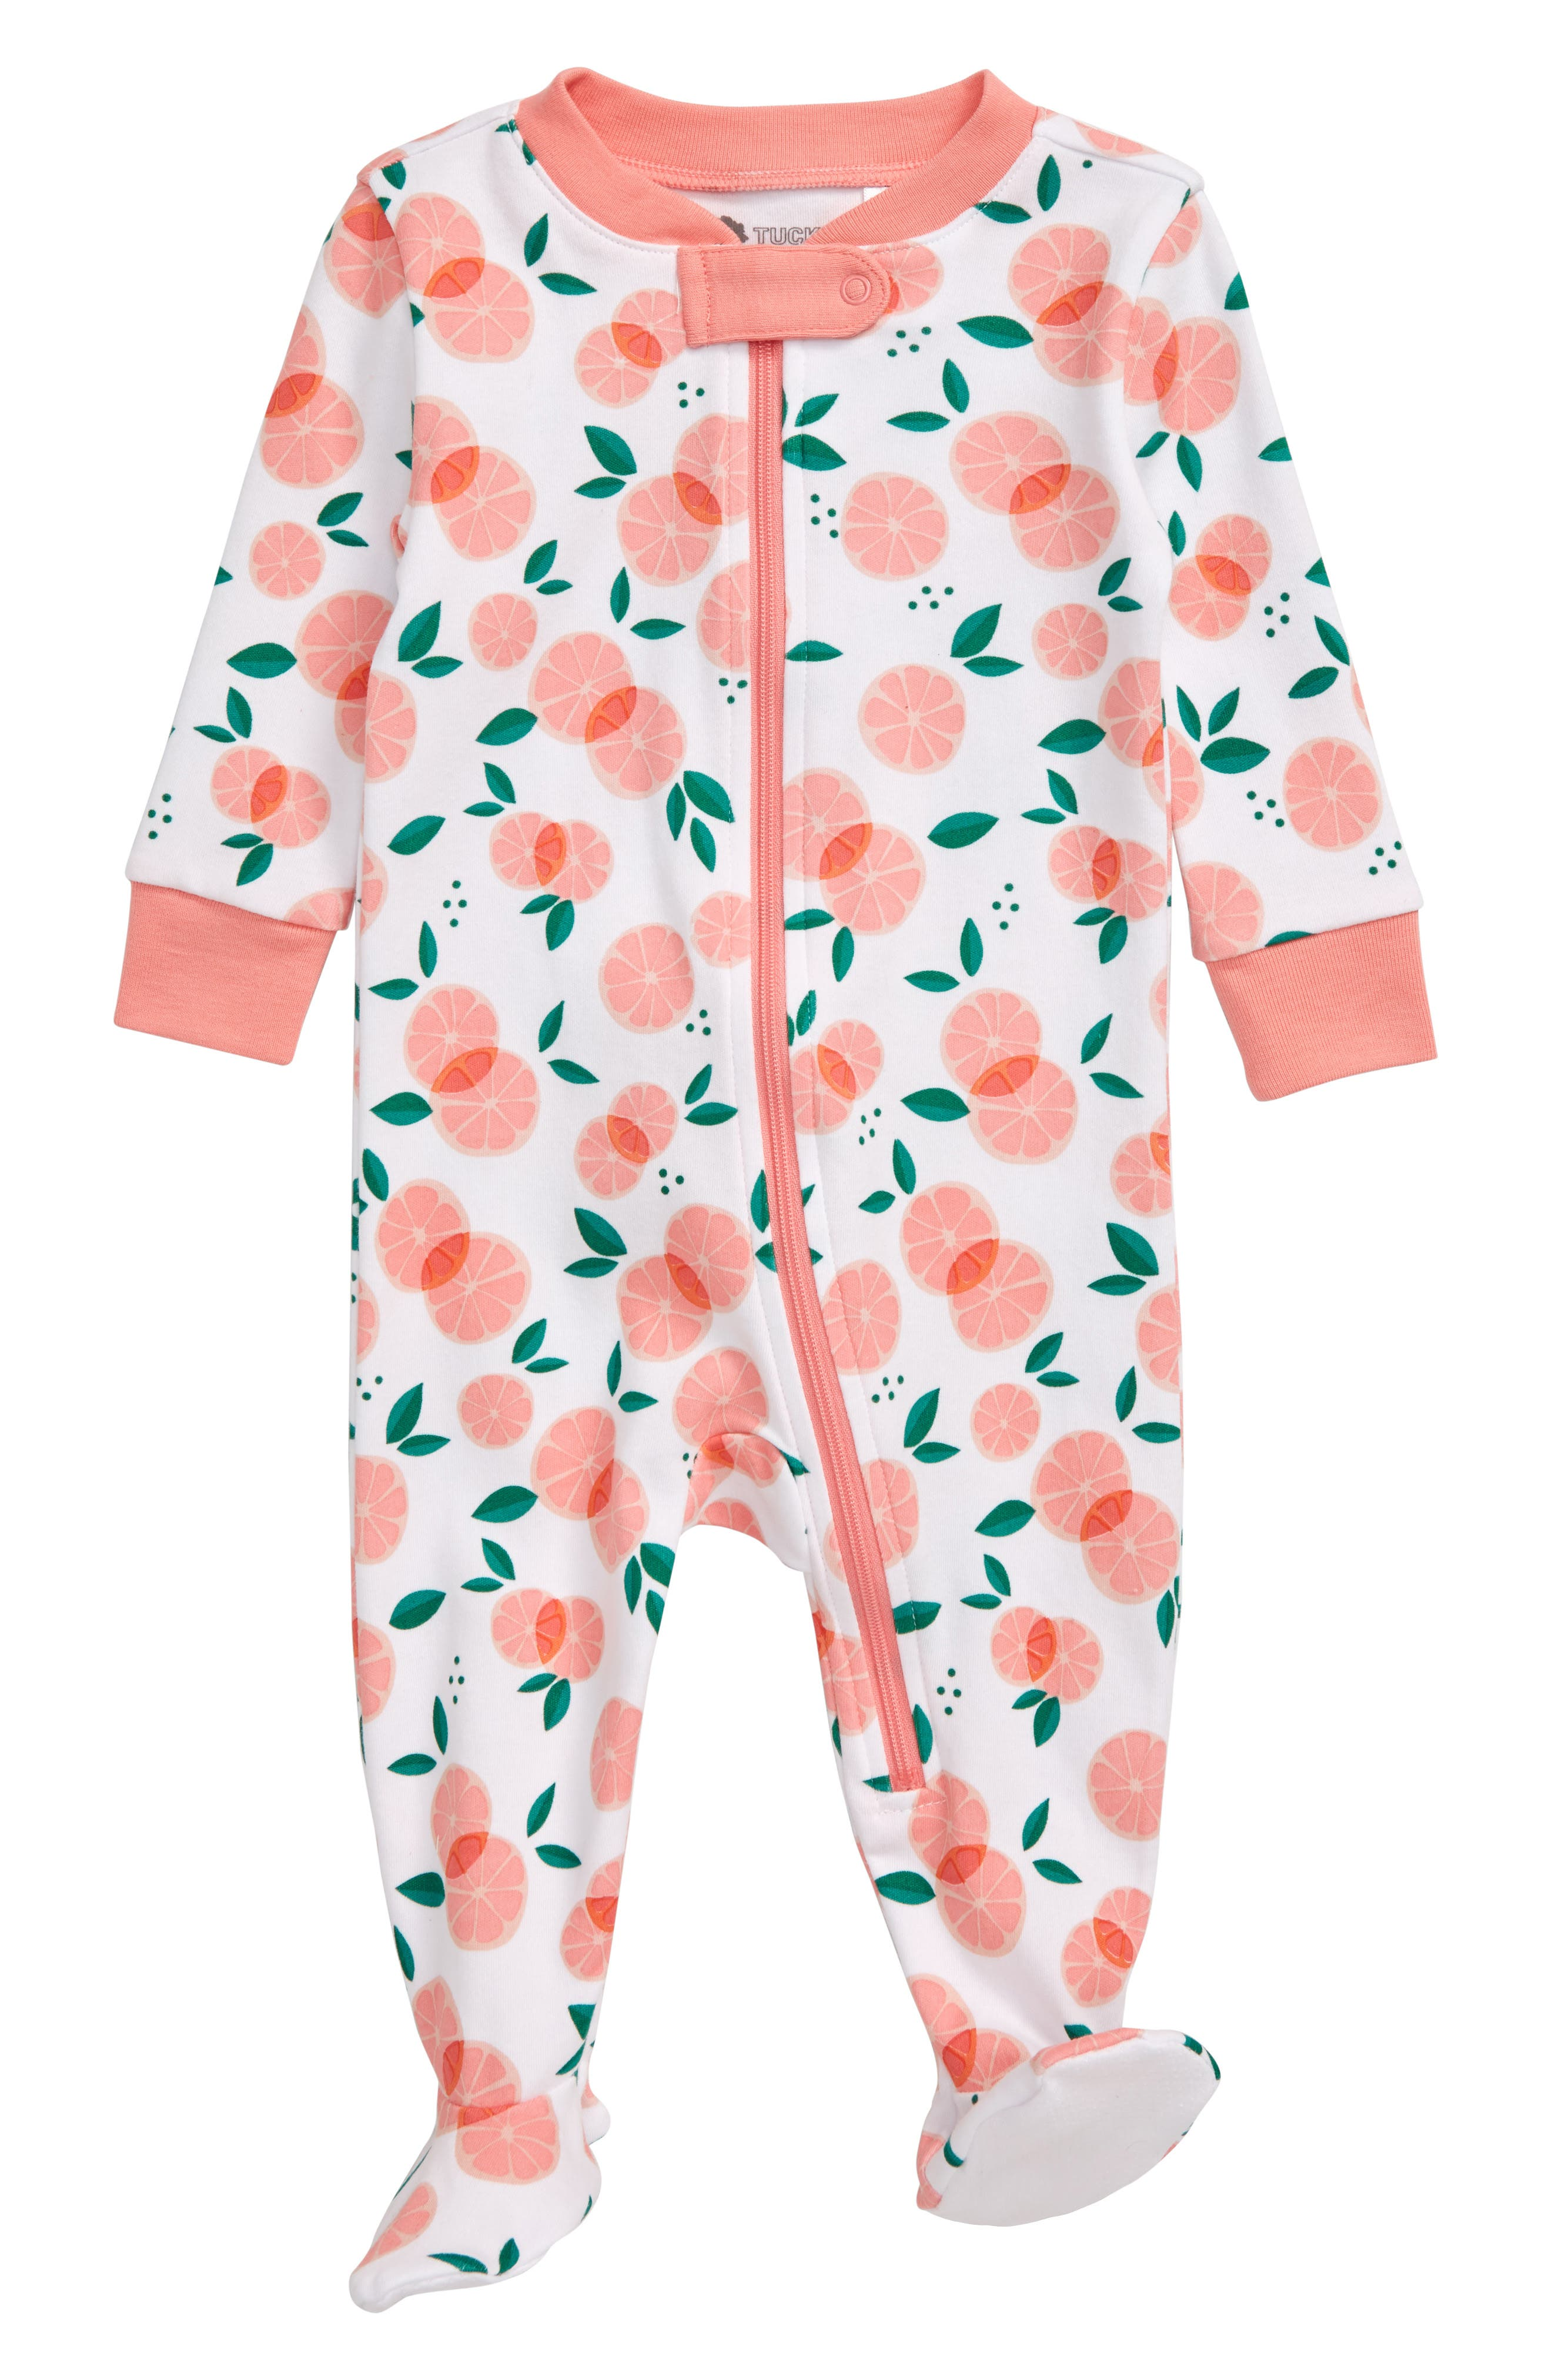 Keep your little one comfy and sleeping soundly in a snug-fitting footie that zips down the front for easy changing. Style Name: Tucker + Tate Print Fitted One-Piece Pajamas (Baby). Style Number: 5932308. Available in stores.